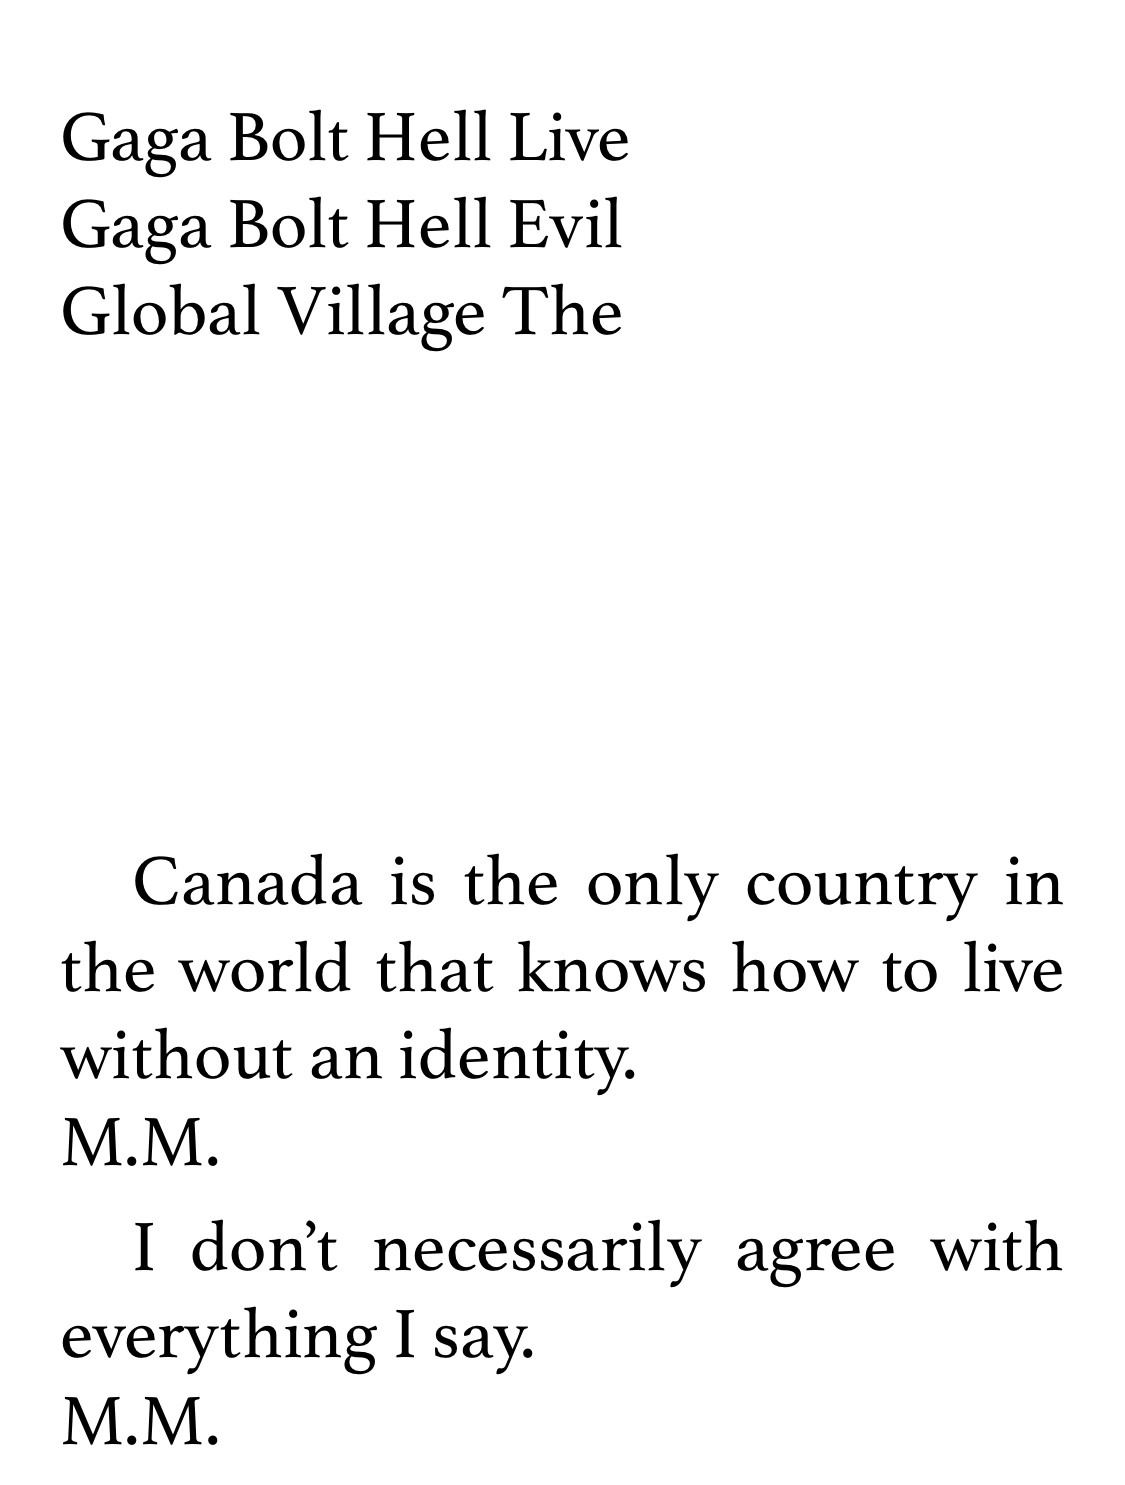 """black text on white background screenshot of Douglas Coupland's Marshall McCluhan bio, including """"The Global Village"""" anagrams and two quotes about Canada"""